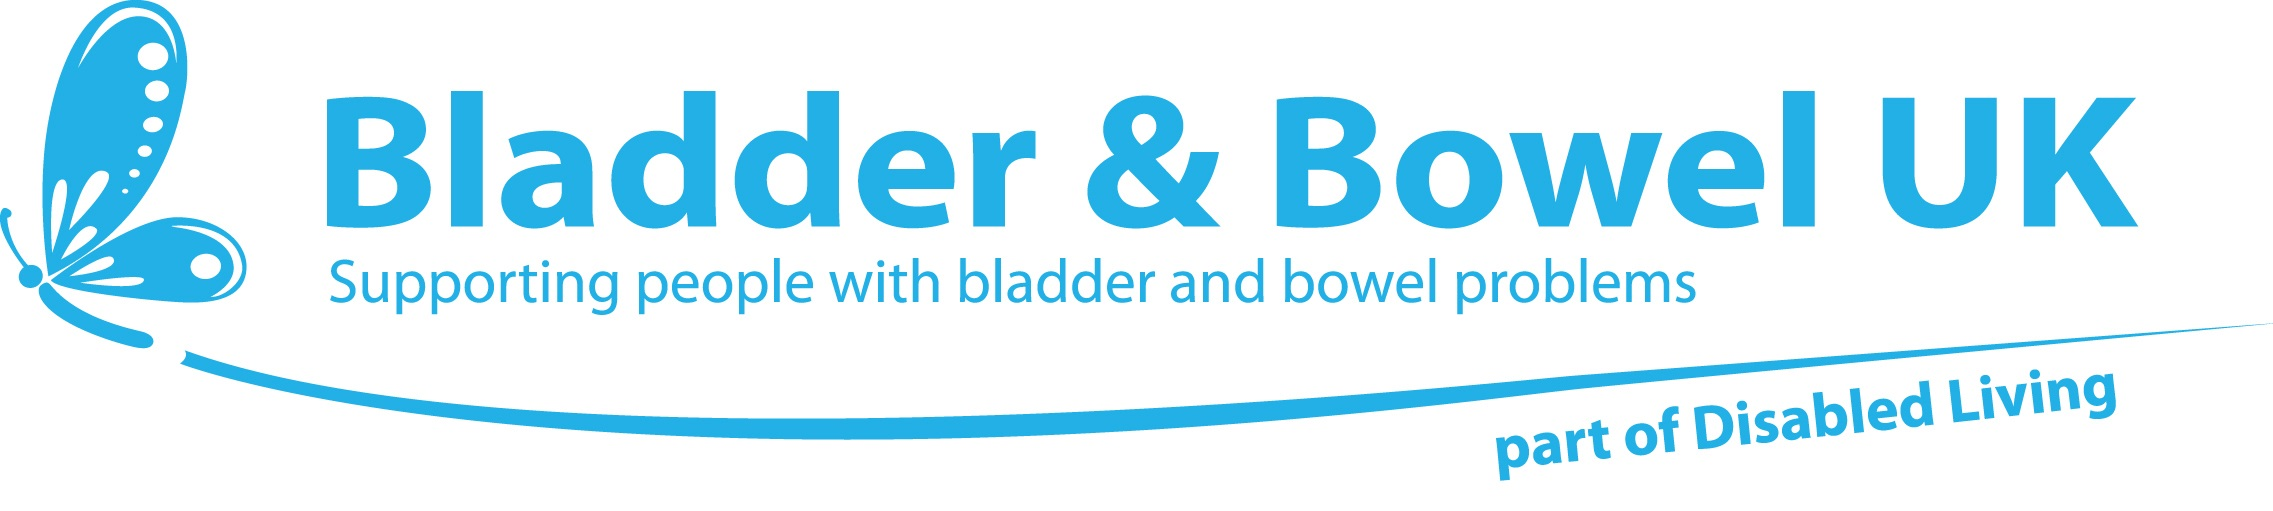 Bladder and Bowel UK